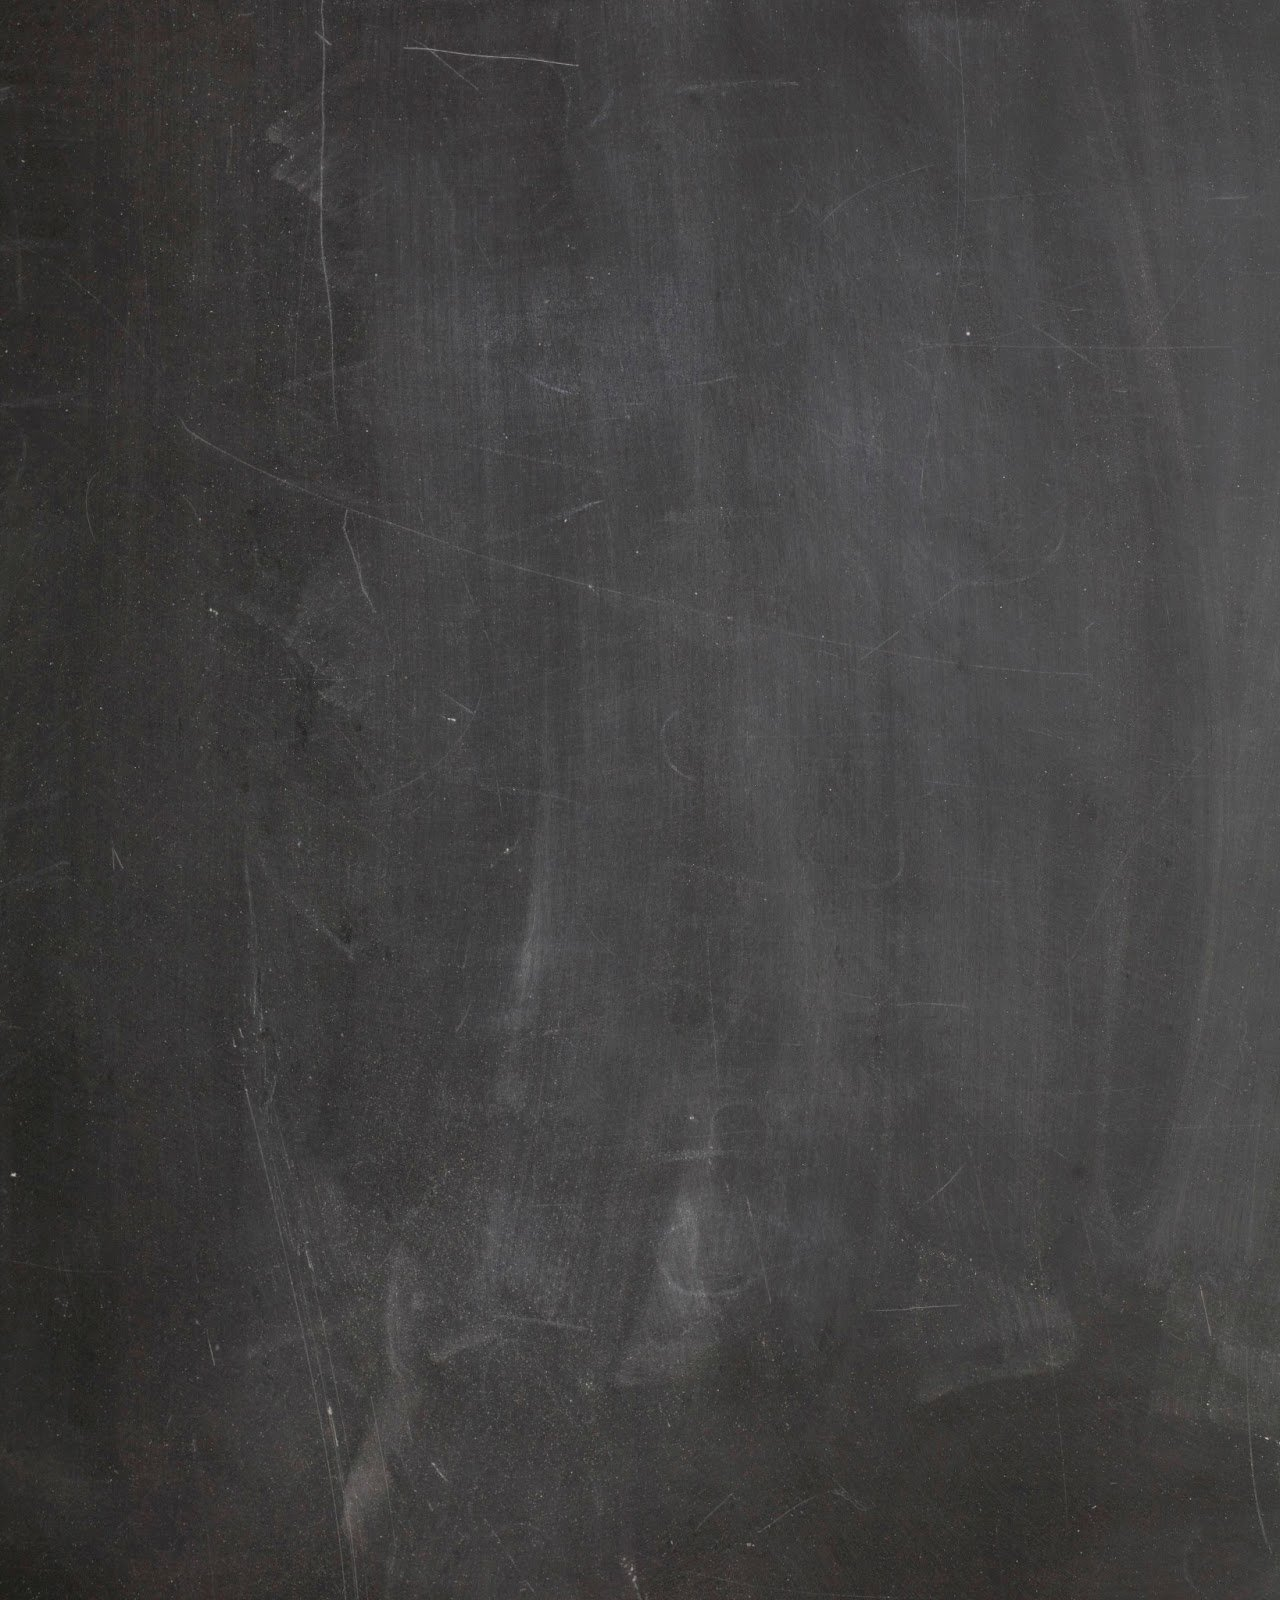 Free Chalkboard Invitation Templates Fresh A List Of the Best Free Chalkboard Fonts and Free